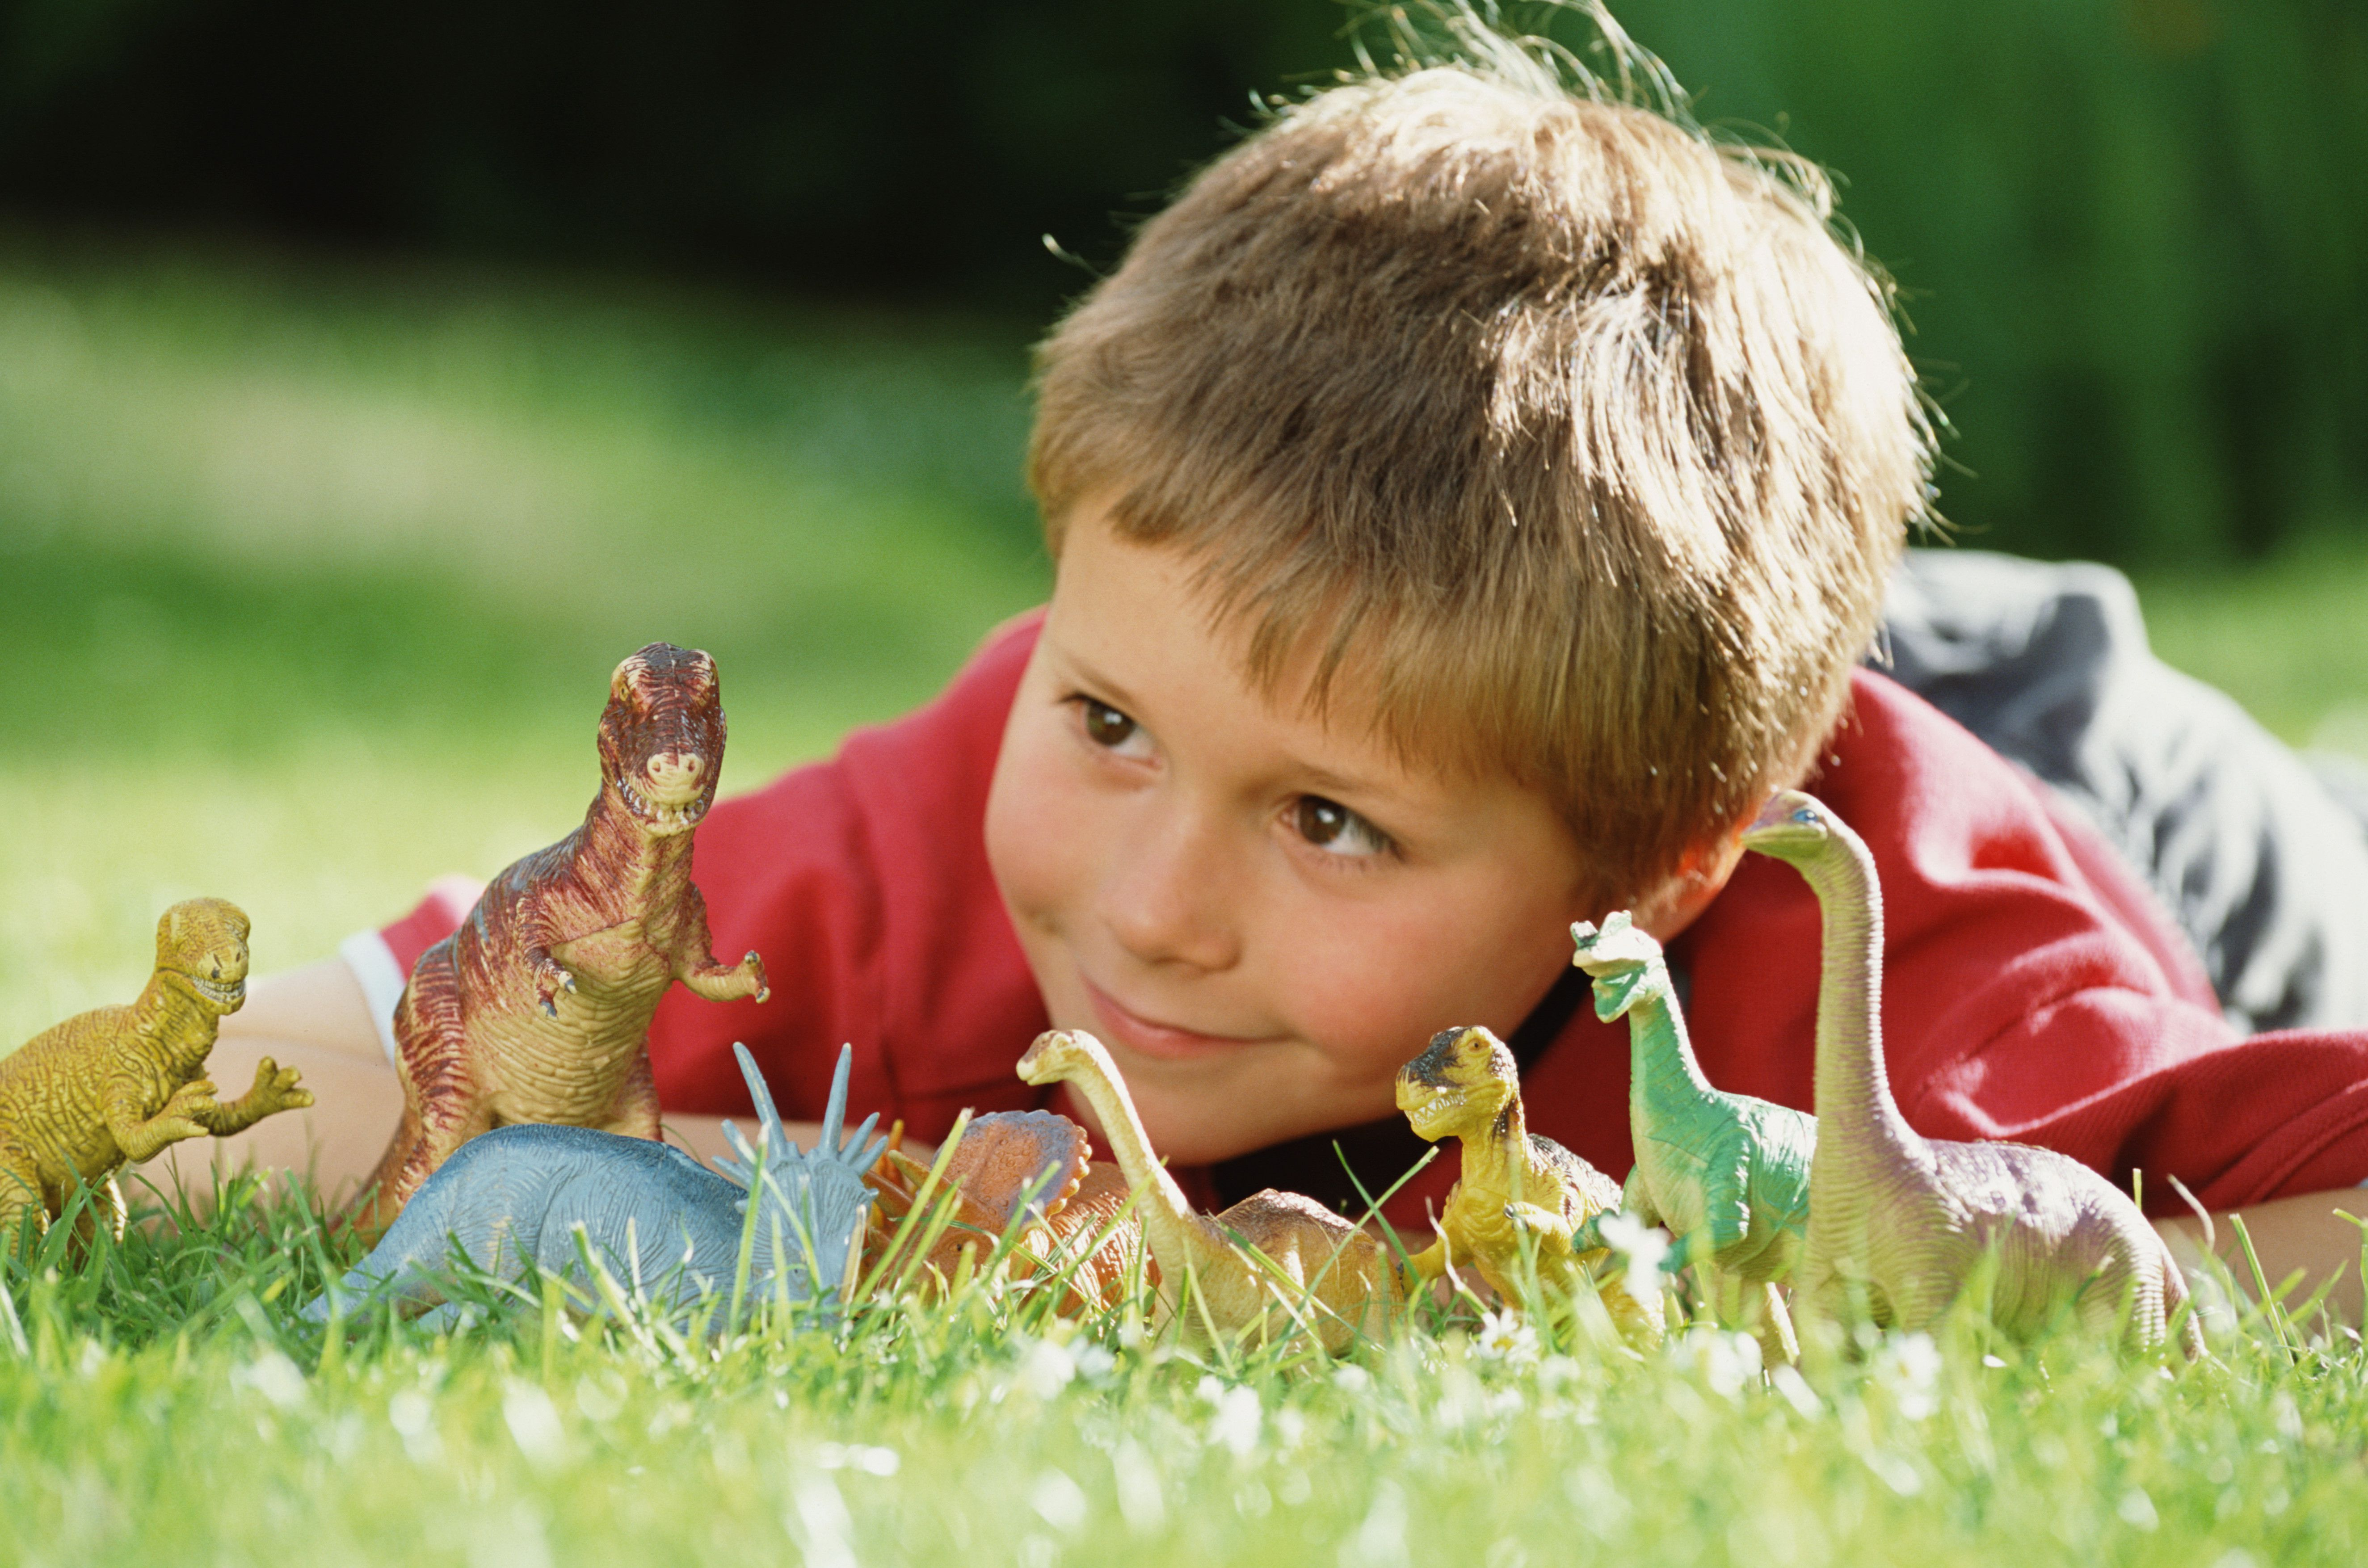 Boy (8-10) lying on grass, looking at row of toy dinosaurs, close-up